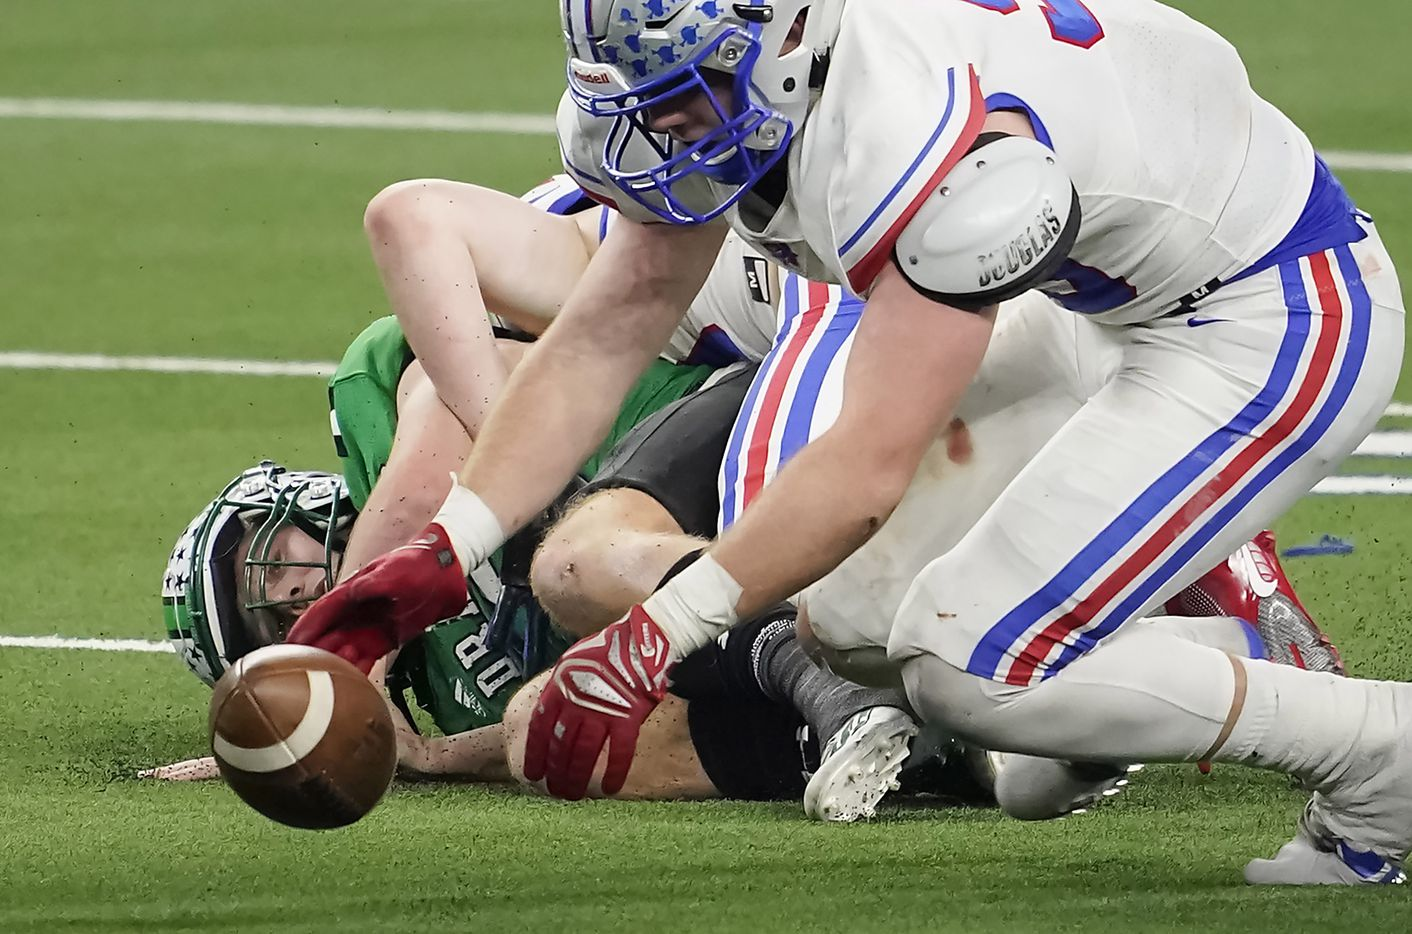 Austin Westlake defensive lineman Braden Davis (95) recovers a fumble by Southlake Carroll quarterback Quinn Ewers (3) during the fourth quarter of the Class 6A Division I state football championship game at AT&T Stadium on Saturday, Jan. 16, 2021, in Arlington, Texas. Westlake won the game 52-34.